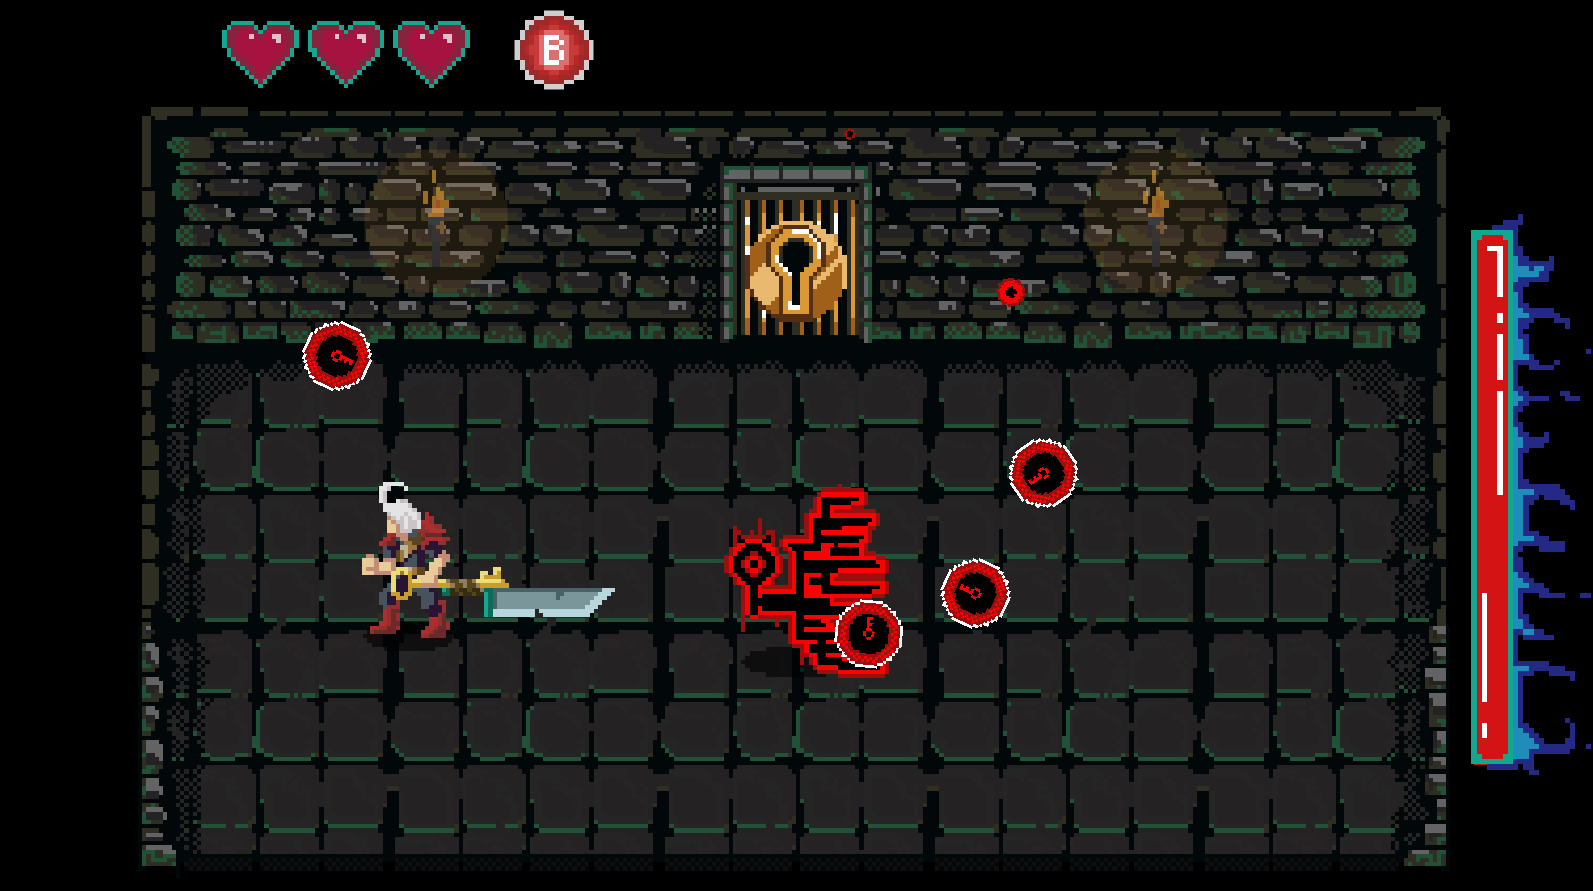 This is the Phase Two of the final boss fight, where the boss transforms into his second form. During Phase One the boss is running around just generally avoiding the Player while enemies bombard you from around the room. The difference is that in Phase Two the boss decides to fight you himself, which is where the fight turns into a bullet hell styled game.